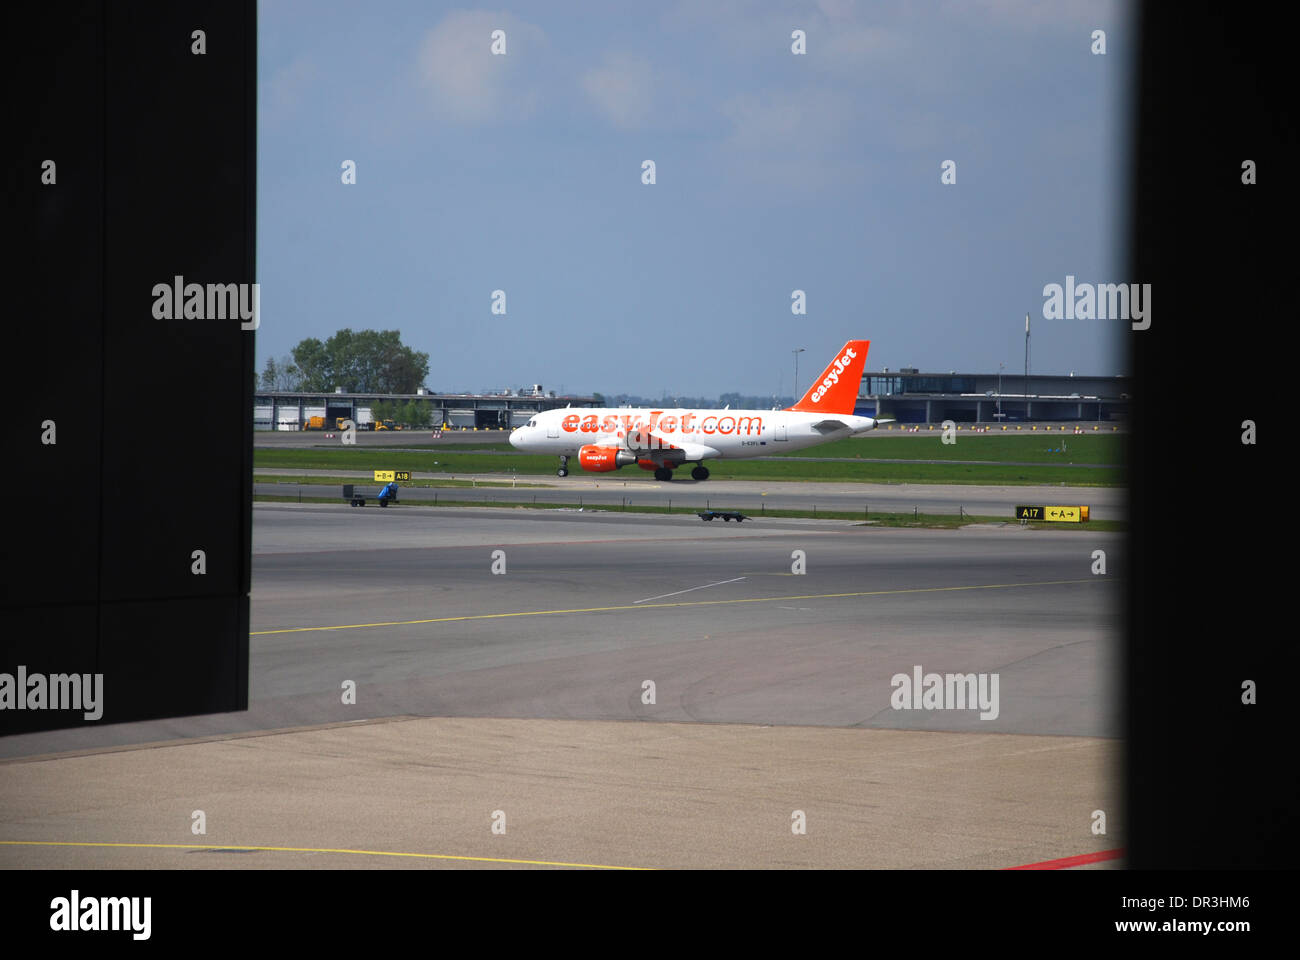 EasyJet Airbus taking off from Schiphol Airport Amsterdam Netherlands - Stock Image